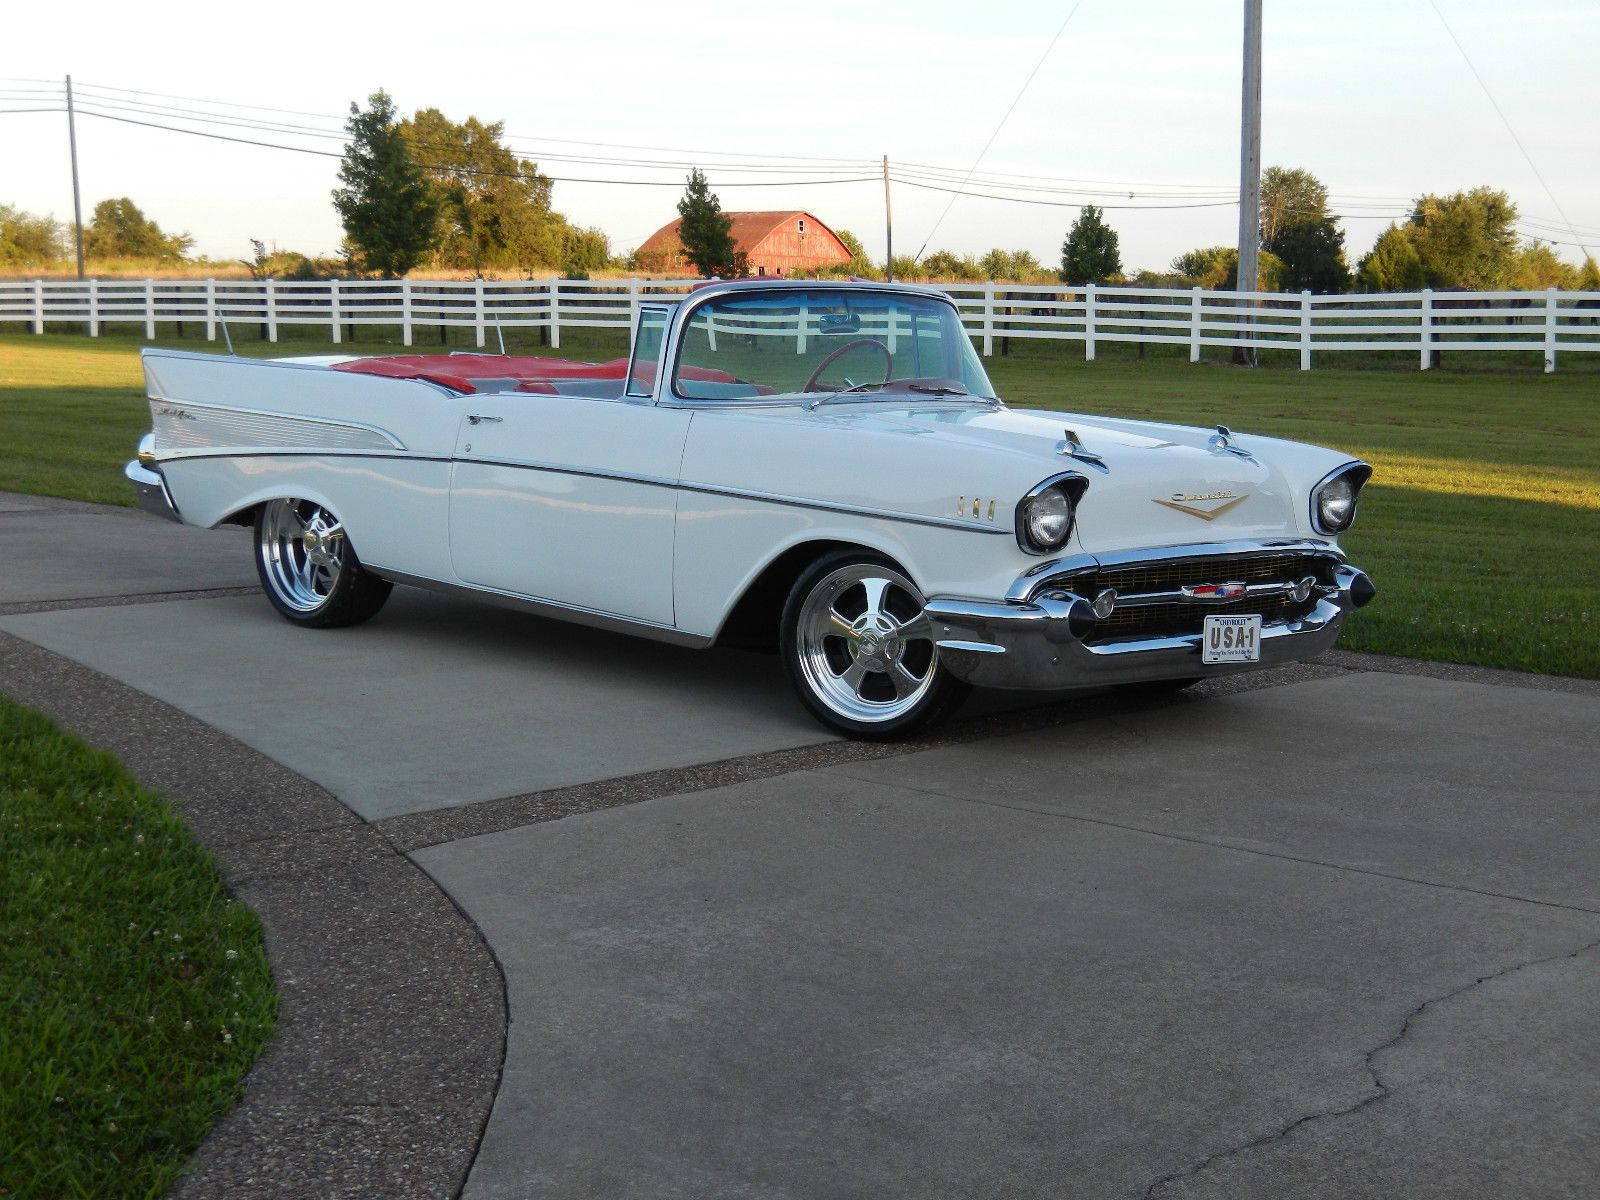 Chevrolet Bel Air 150 210 Belair 1957 Chevy Convertible Custom Resto Mod All New Cold A C Hot Rod